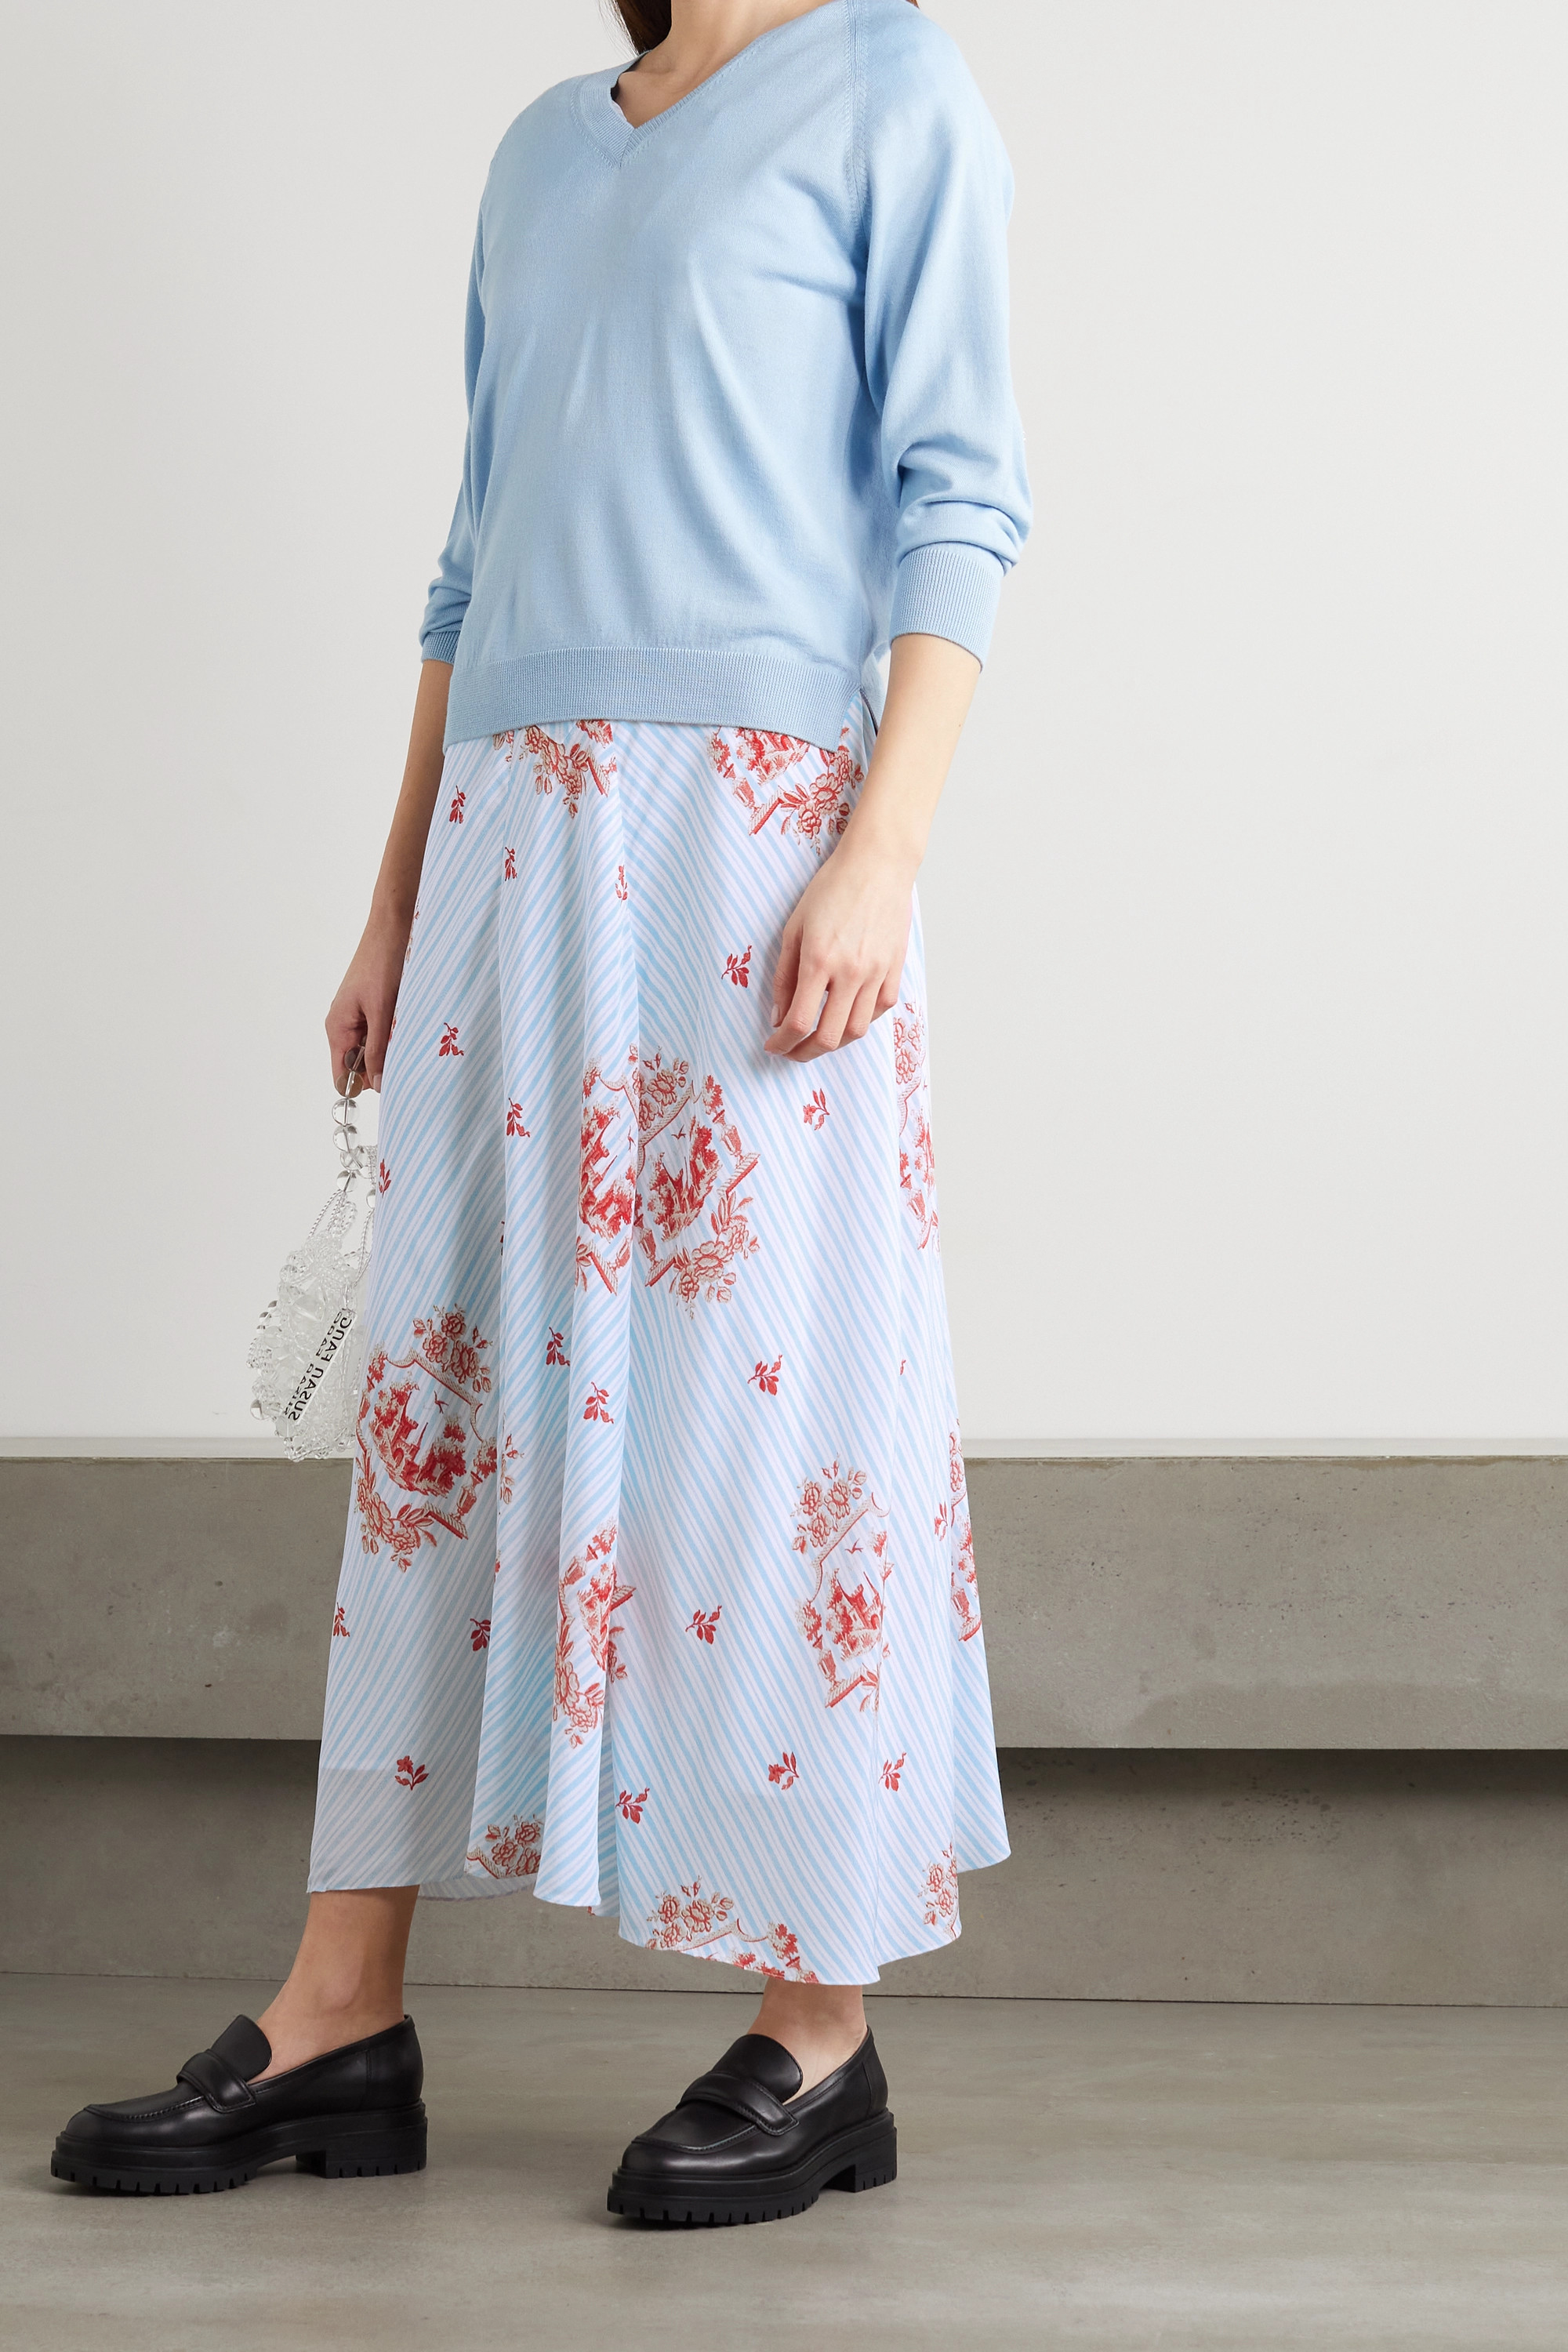 Simone Rocha Ruched printed silk maxi dress